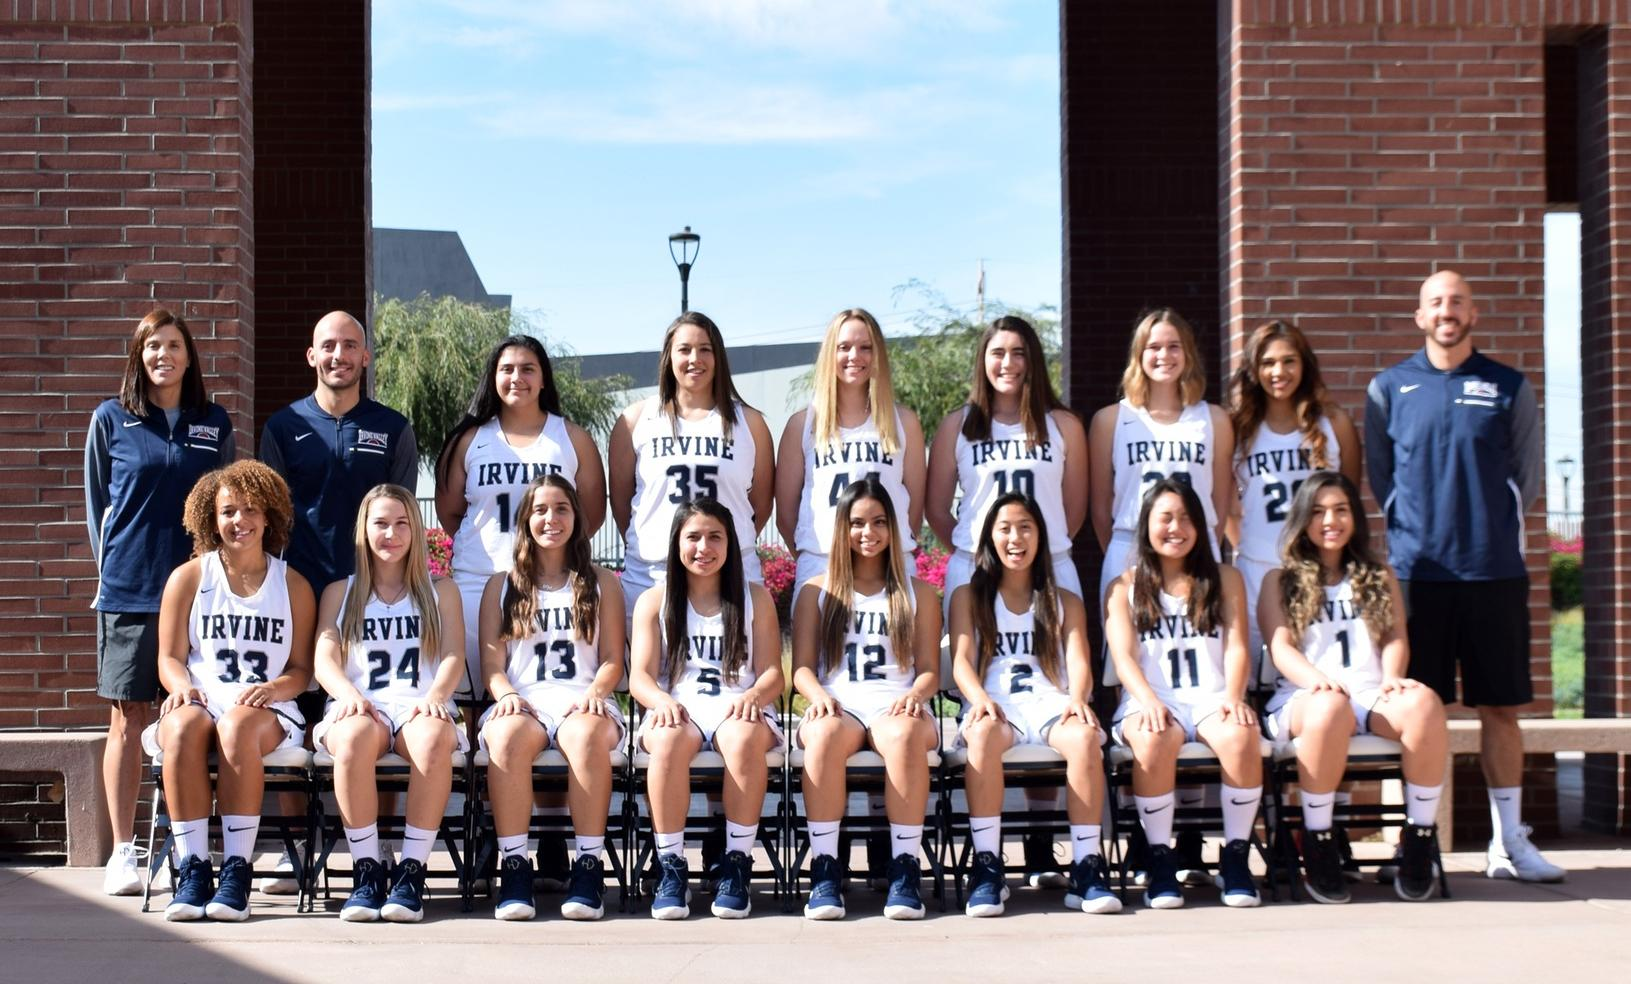 Women's basketball team ranked No. 8 in first state CCCSIA poll